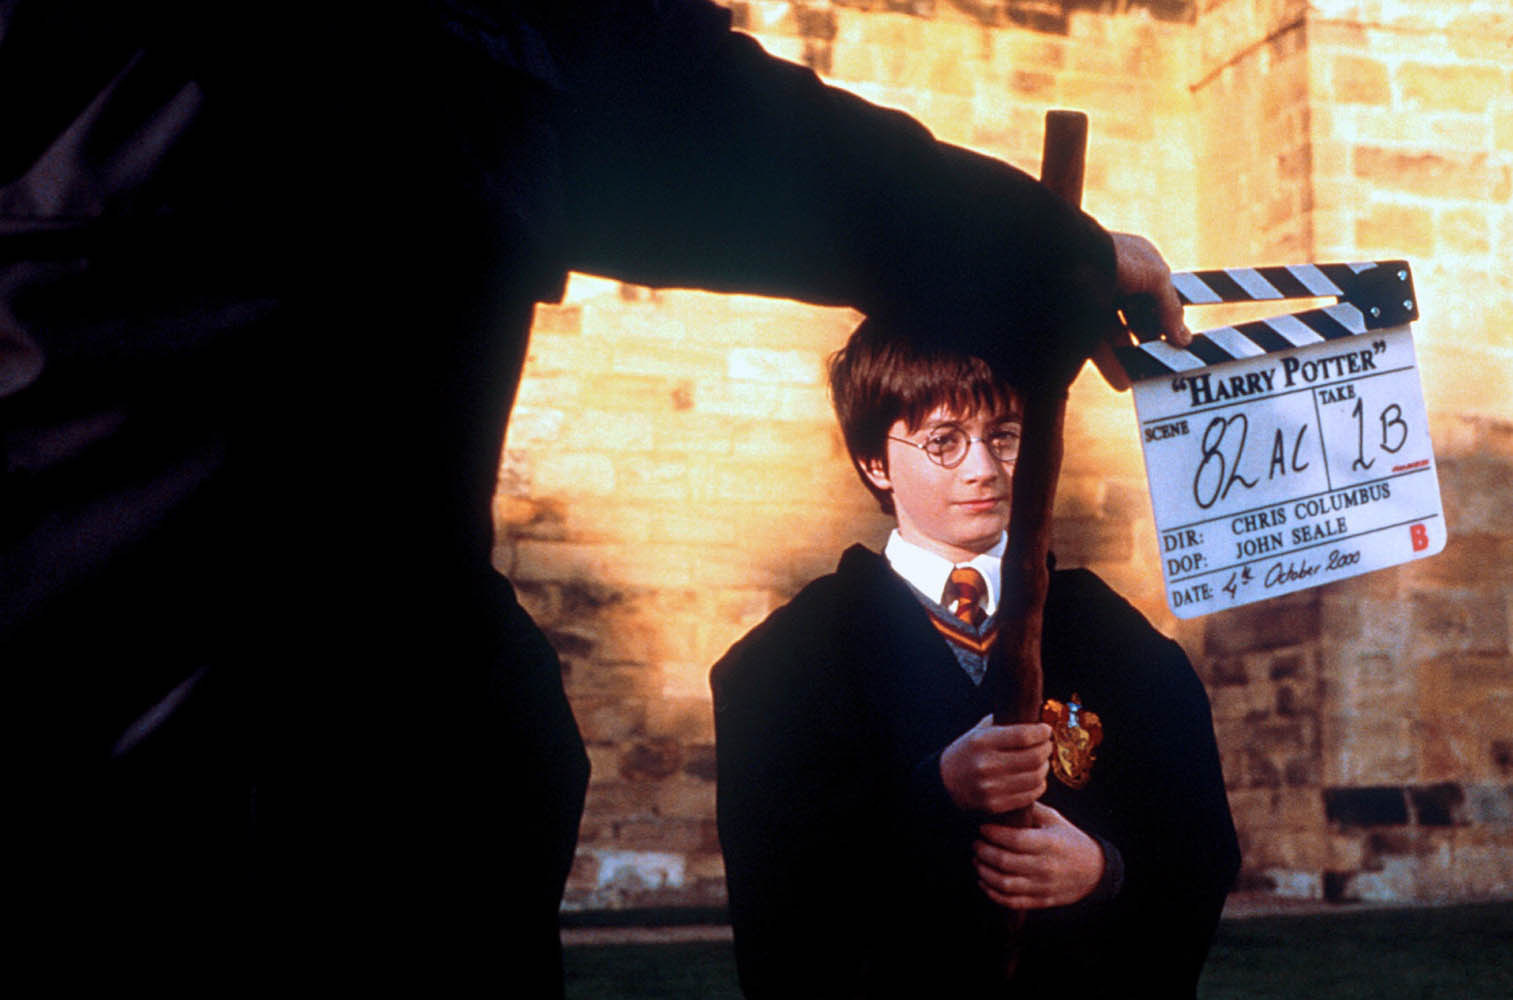 Harry Potter and the Sorcerer's Stone (2001) Behind the Scenes